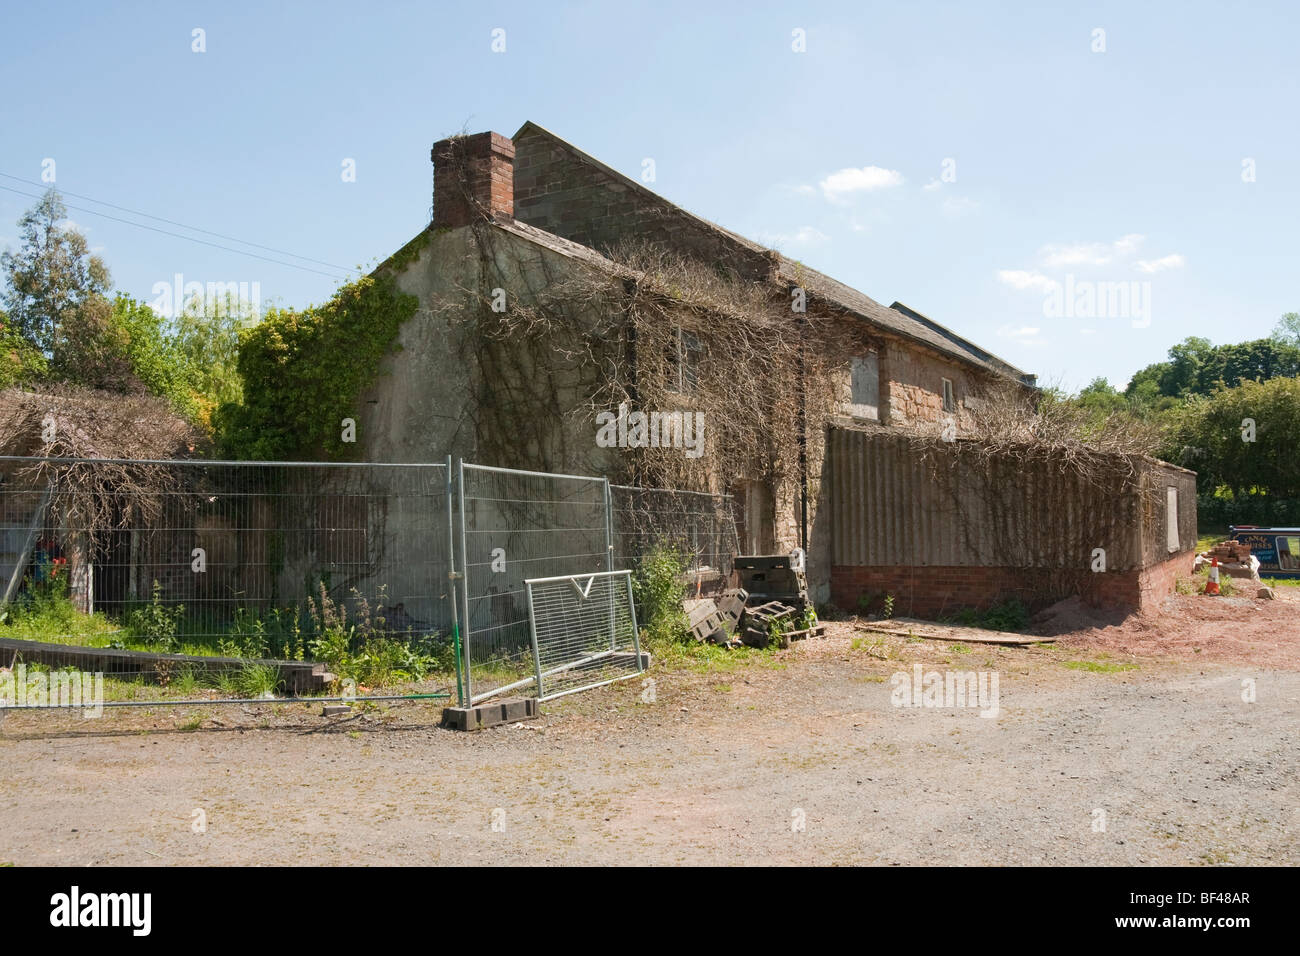 Old derelict building in need of some TLC - Stock Image